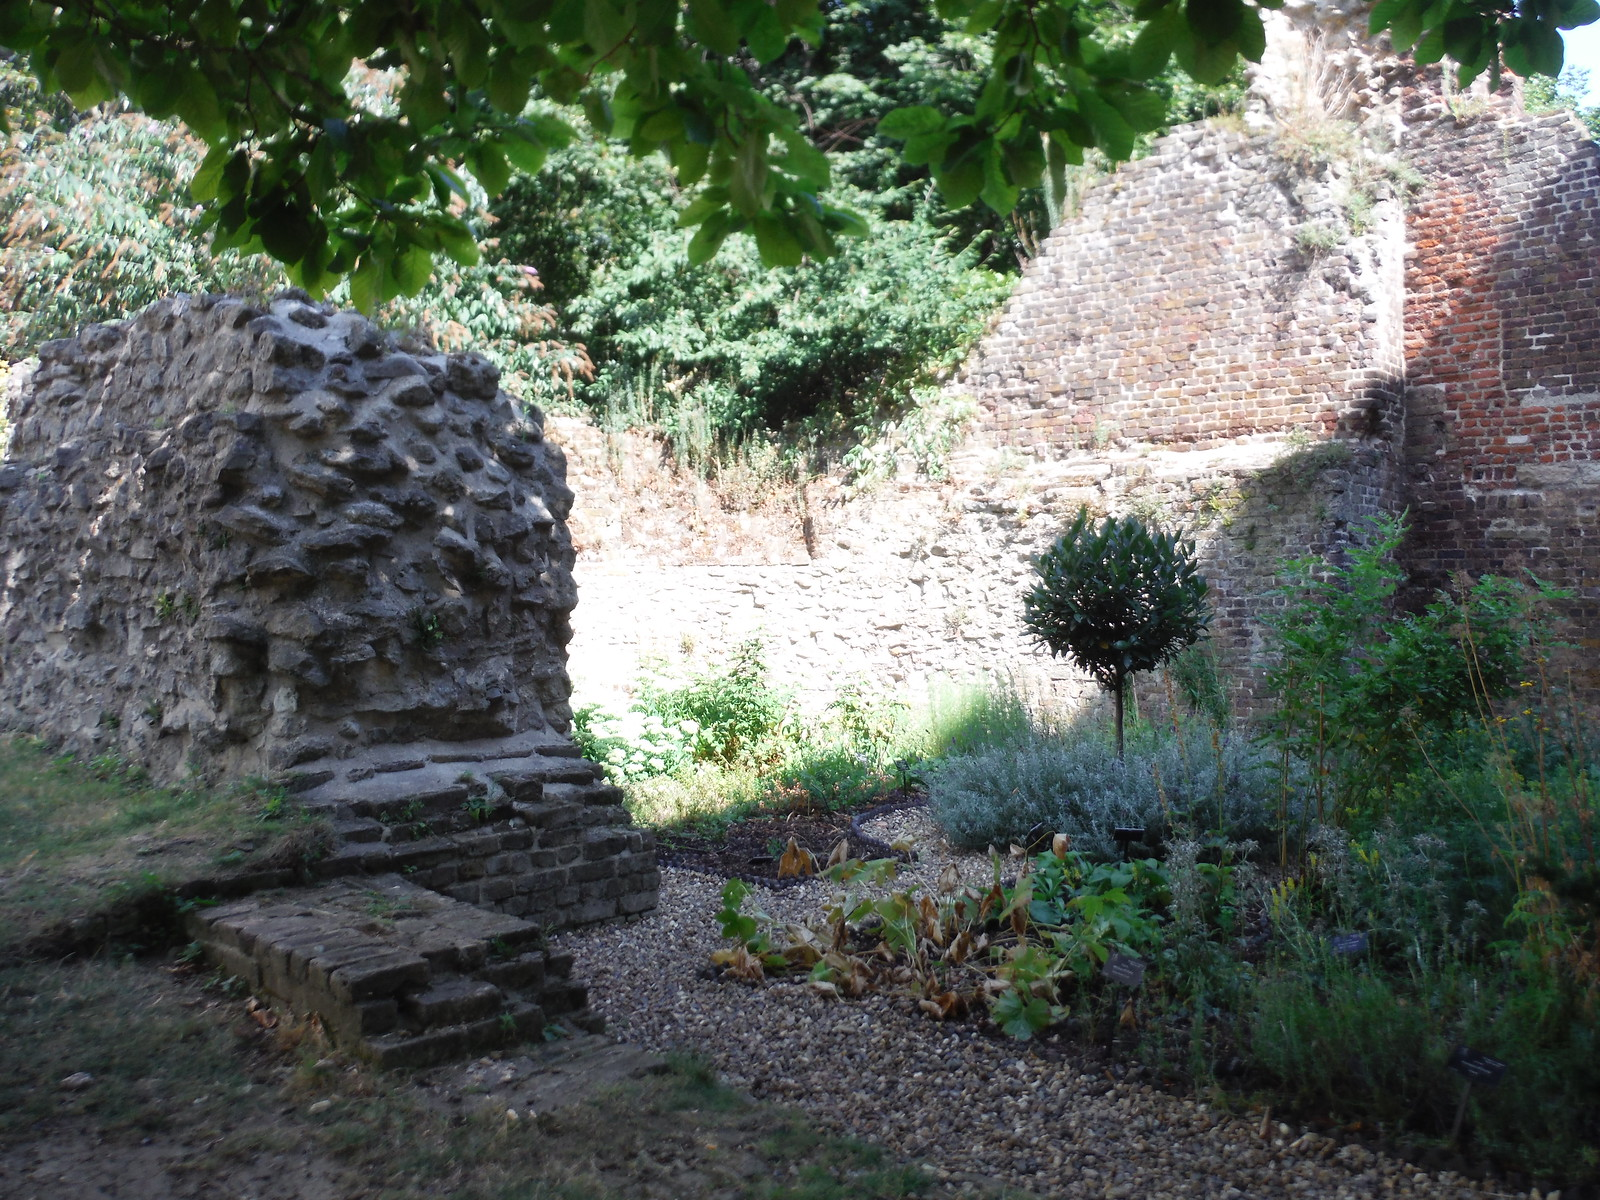 Bastion 13 of the London Wall and Barber Surgeons' Garden SWC Short Walk 47 - The London Wall